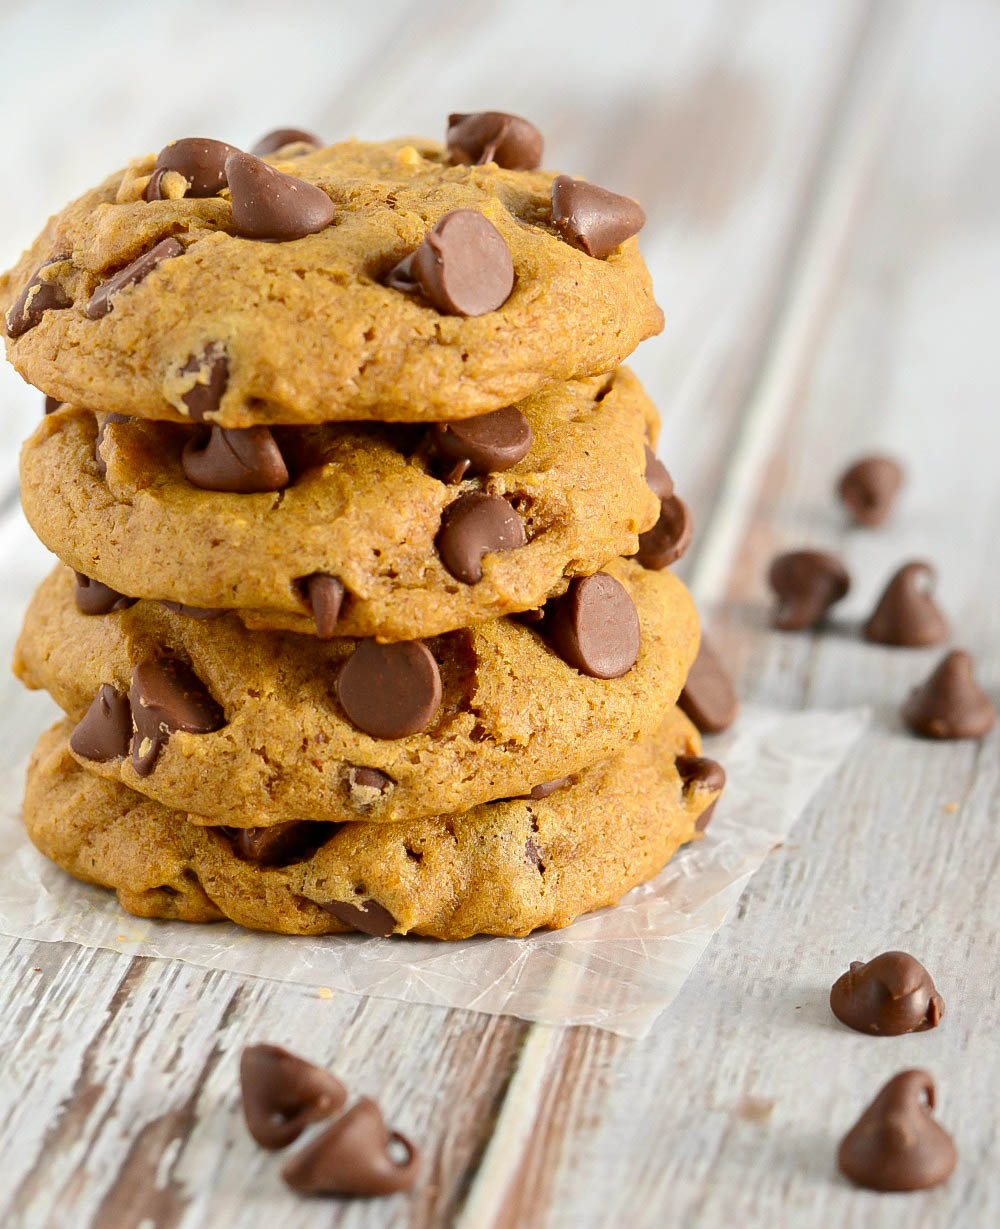 Pumpkin-Chocolate-Chip-Cookies-033-1-2.jpg